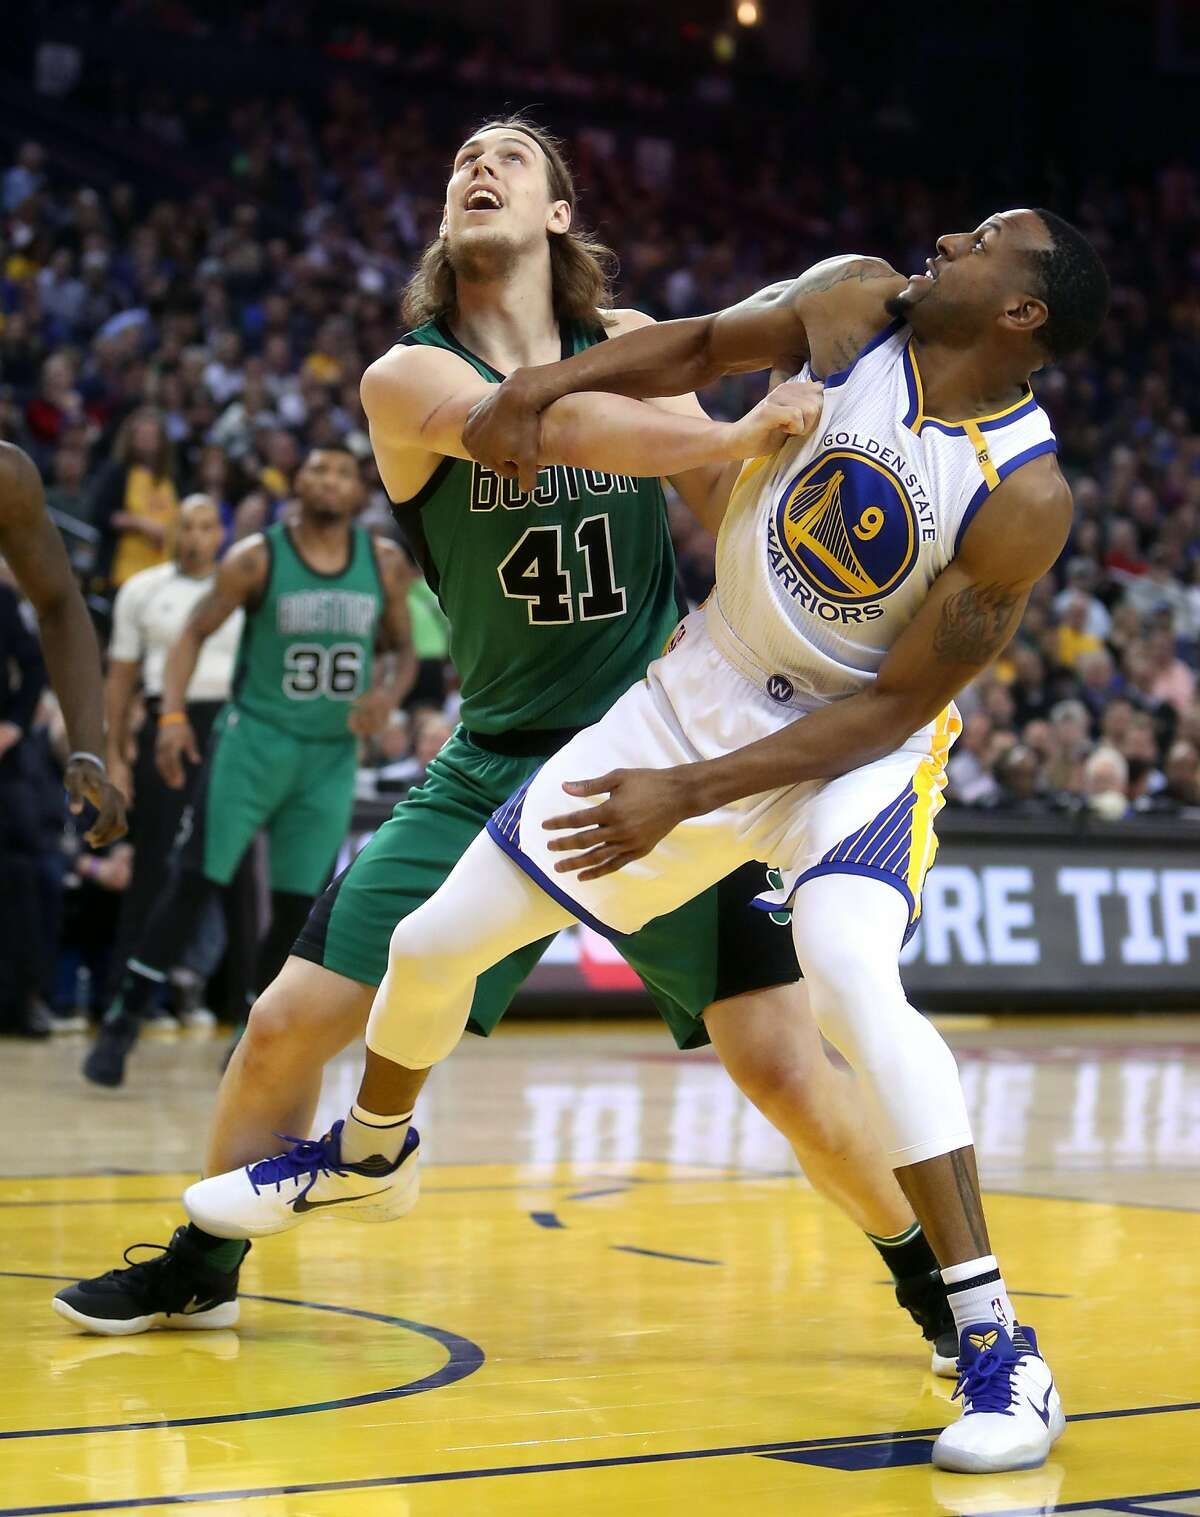 Golden State Warriors' Andre Iguodala and Boston Celtics' Kelly Olynyk battle for rebound position in 2nd quarter during NBA game at Oracle Arena in Oakland, Calif., on Wednesday, March 8, 2017.